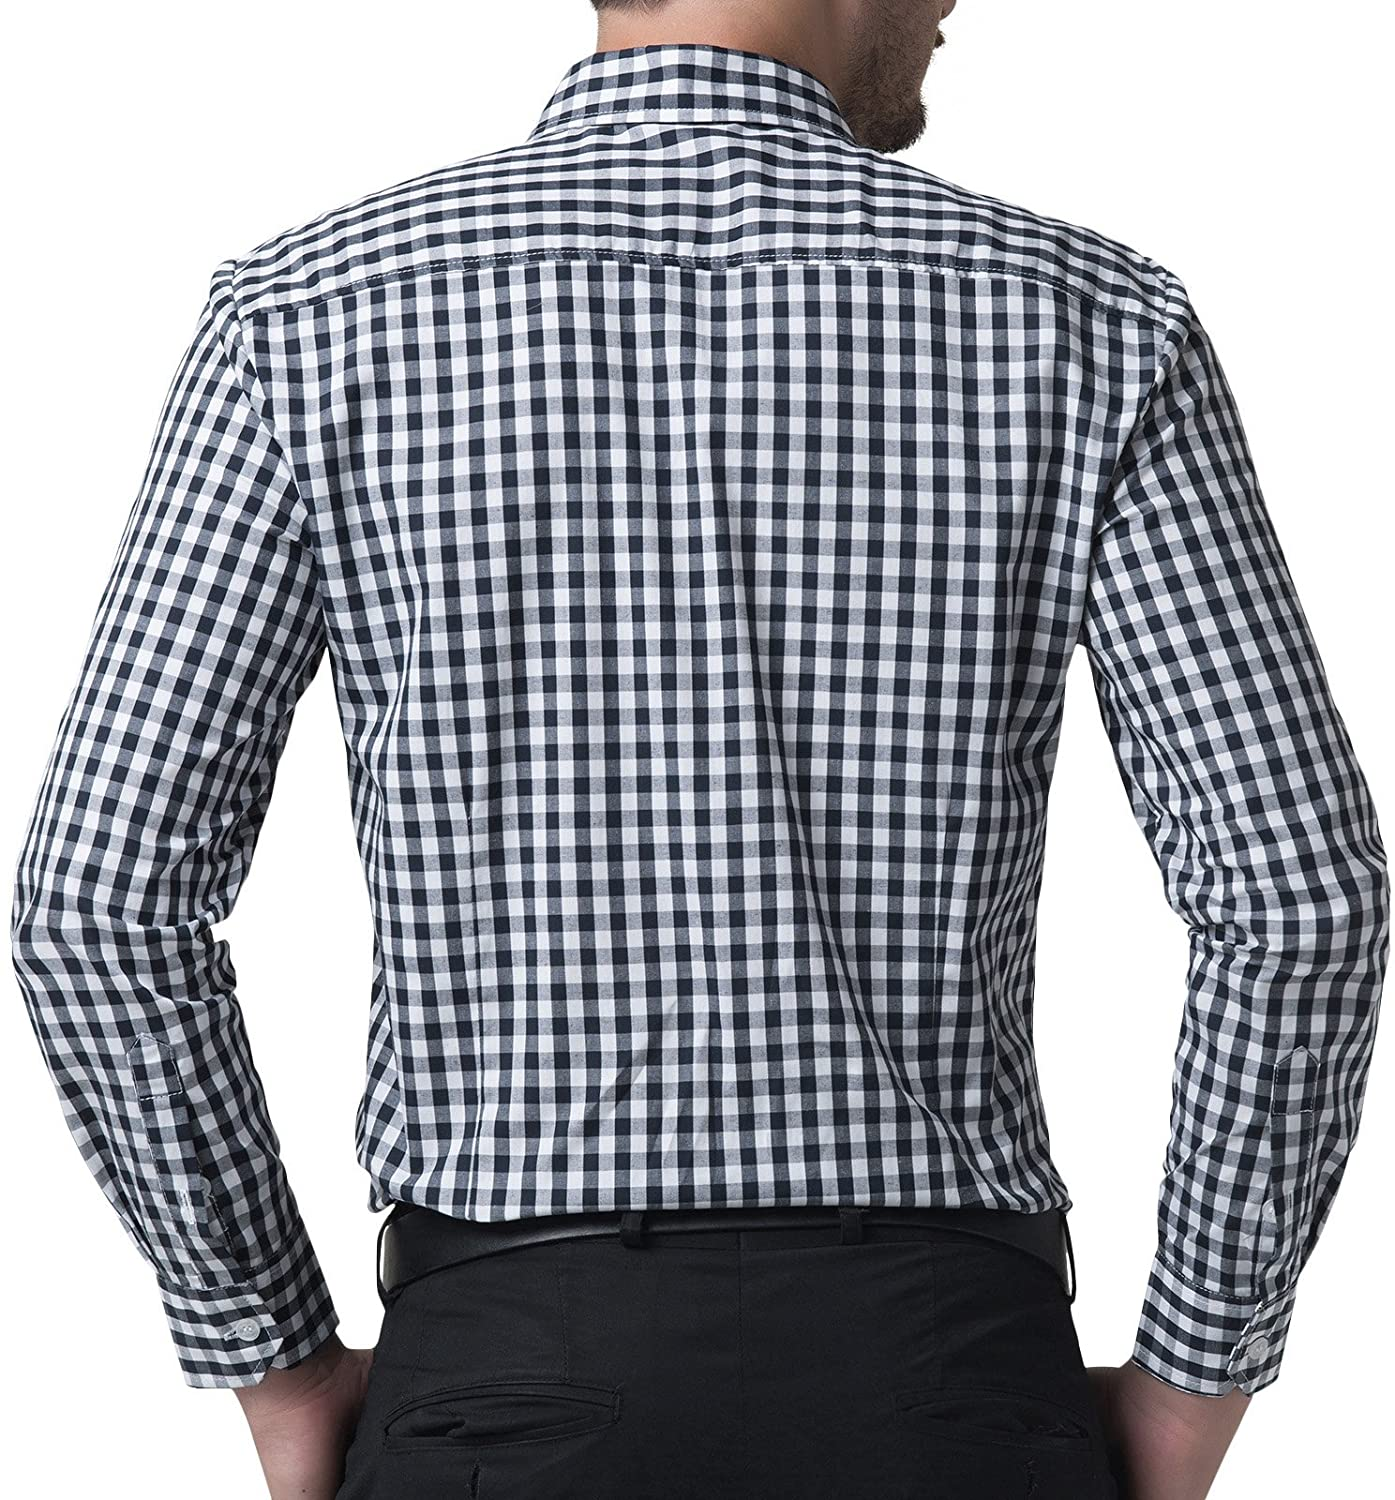 Casual Slim Fit Plaid Dress Shirts for Men Long Sleeve at Amazon ...